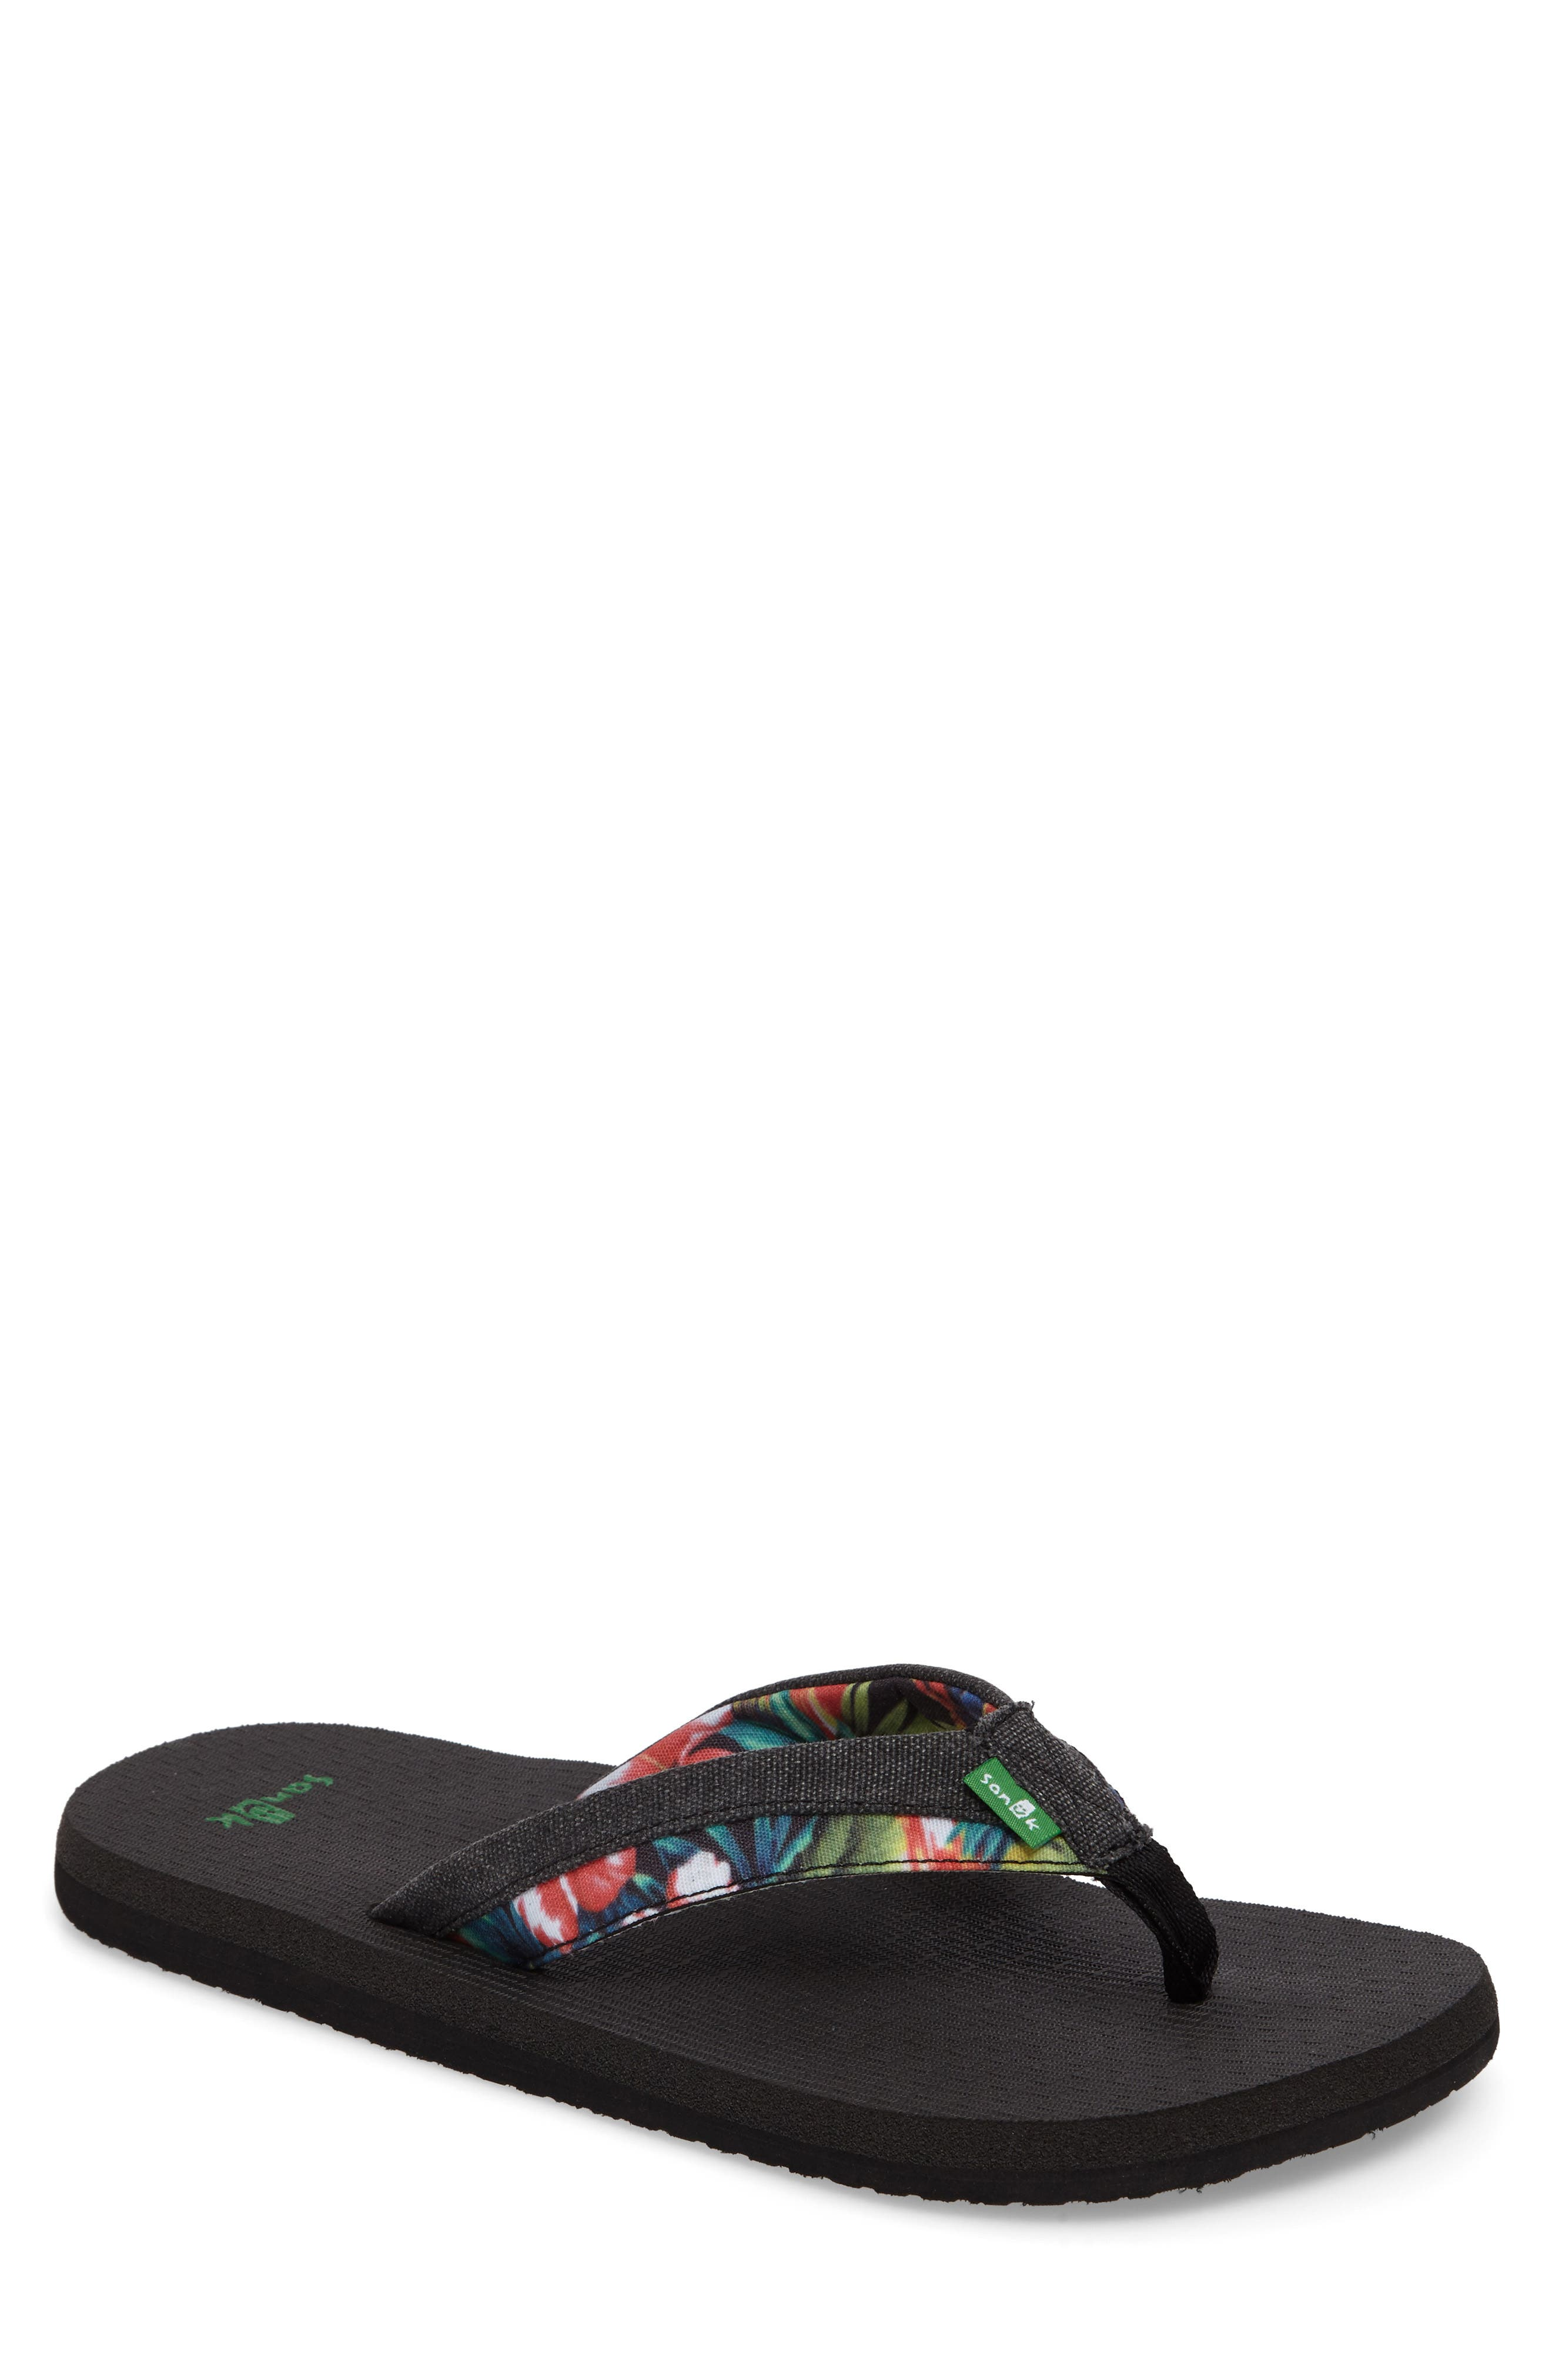 Sanuk Beer Cozy Light Funk Flip Flop (Men)